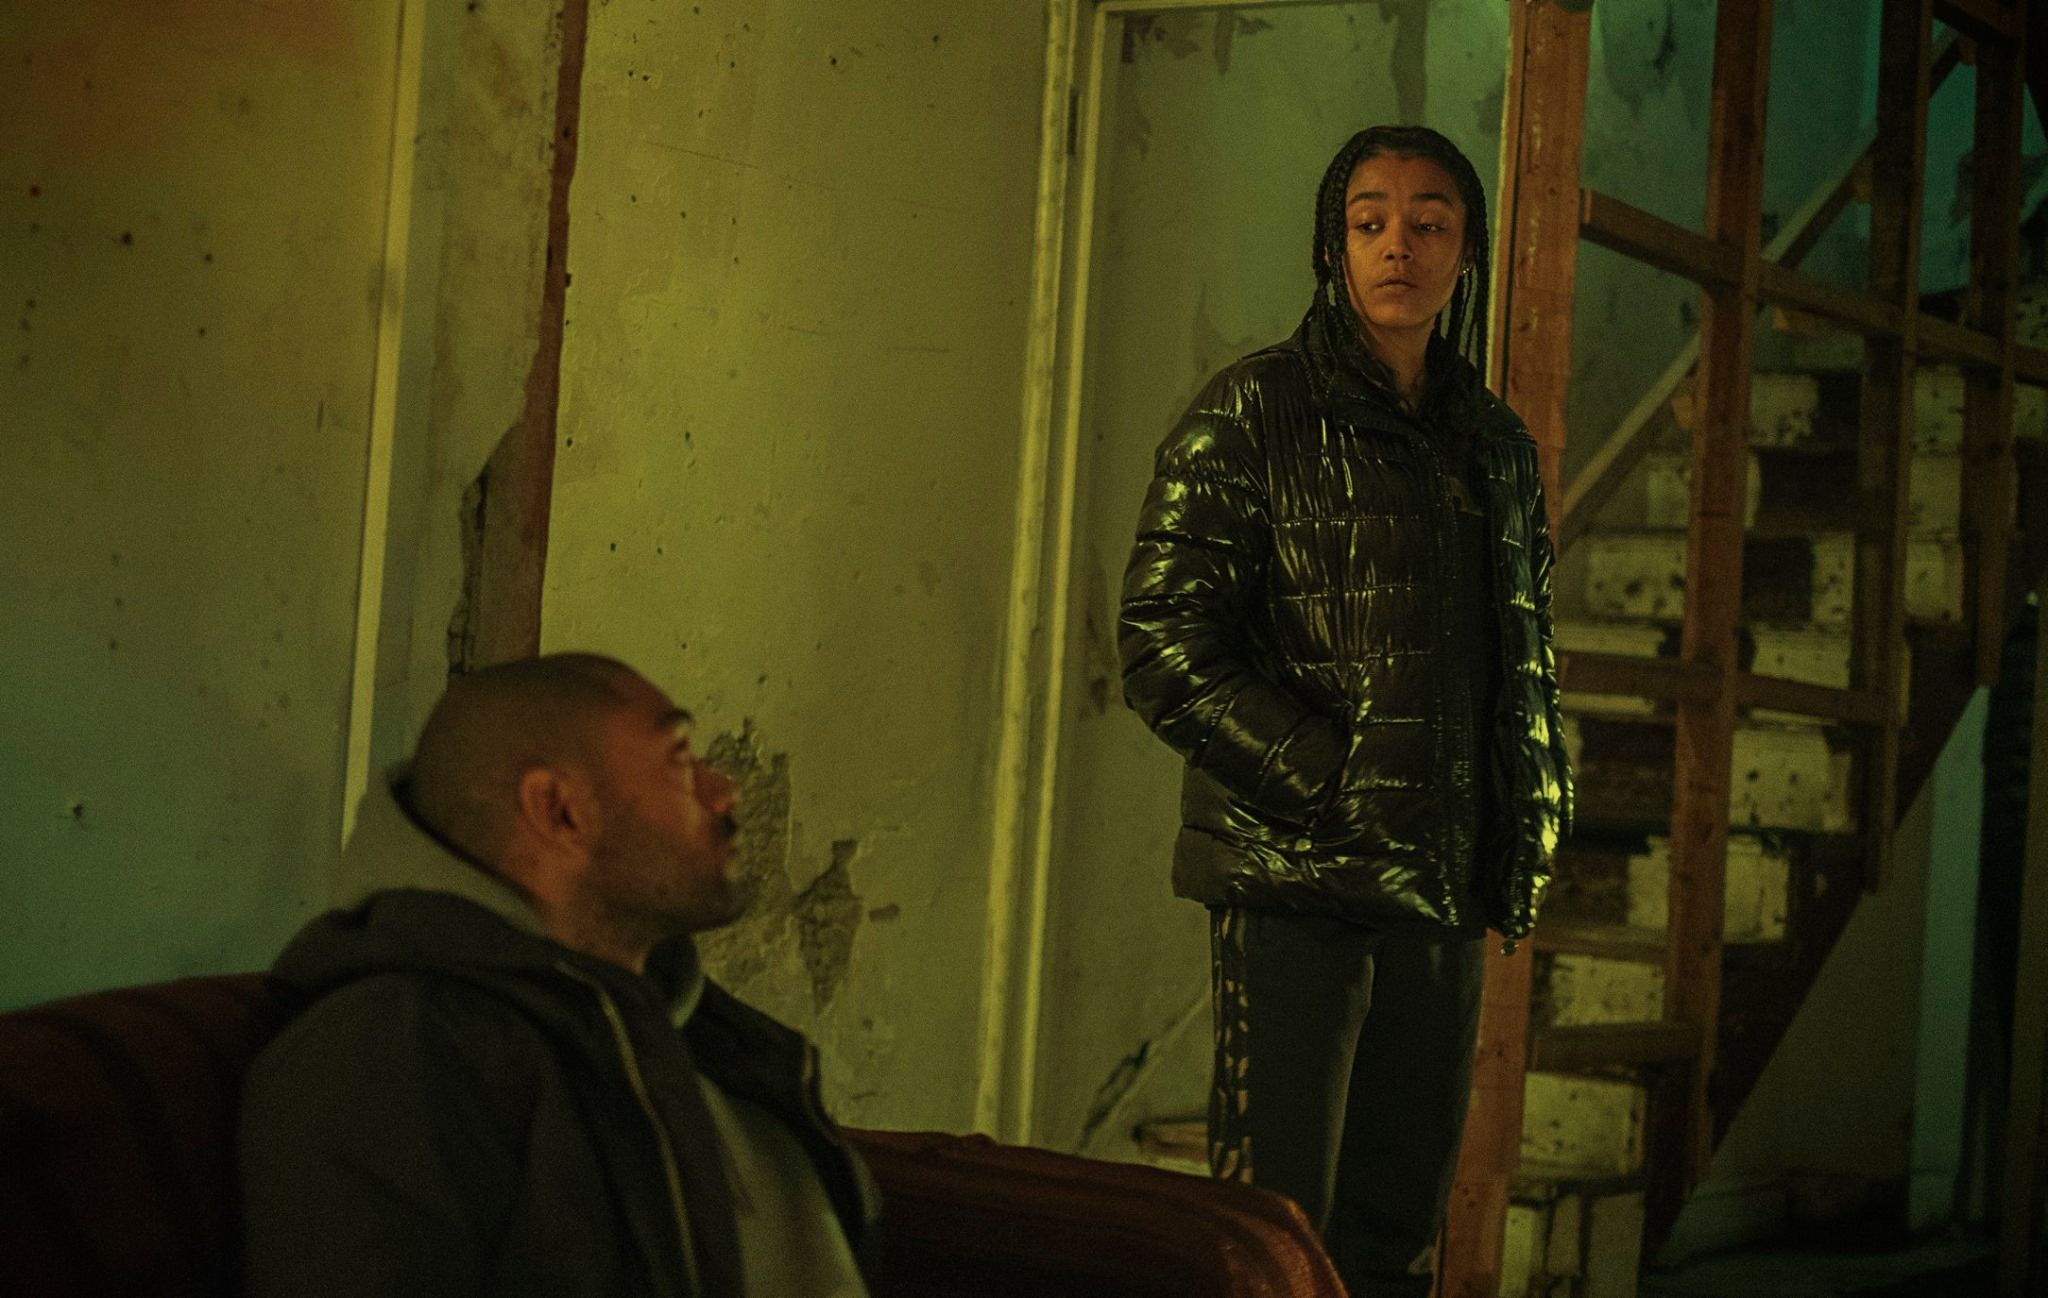 Top Boy season 3 is coming to Netflix and here's a sneak peek